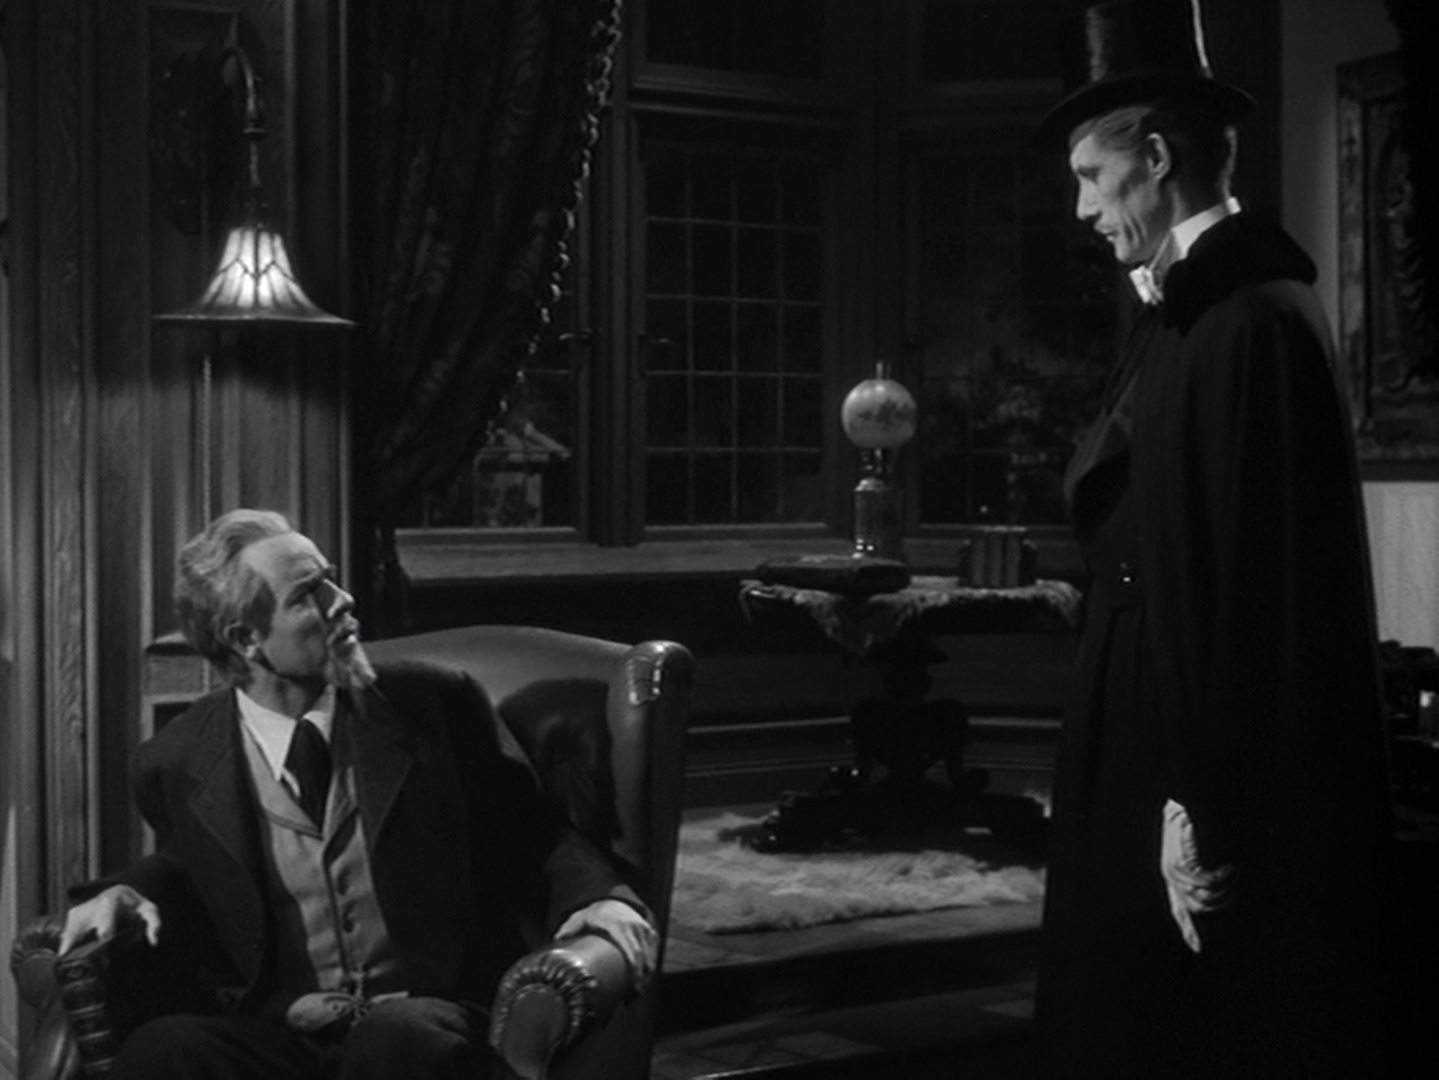 werewolf midnite reviews the help of his hunchbacked assistant nina jane adams the kindly dr franz edlemann onslow stevens attempts to cure larry talbot and count dracula